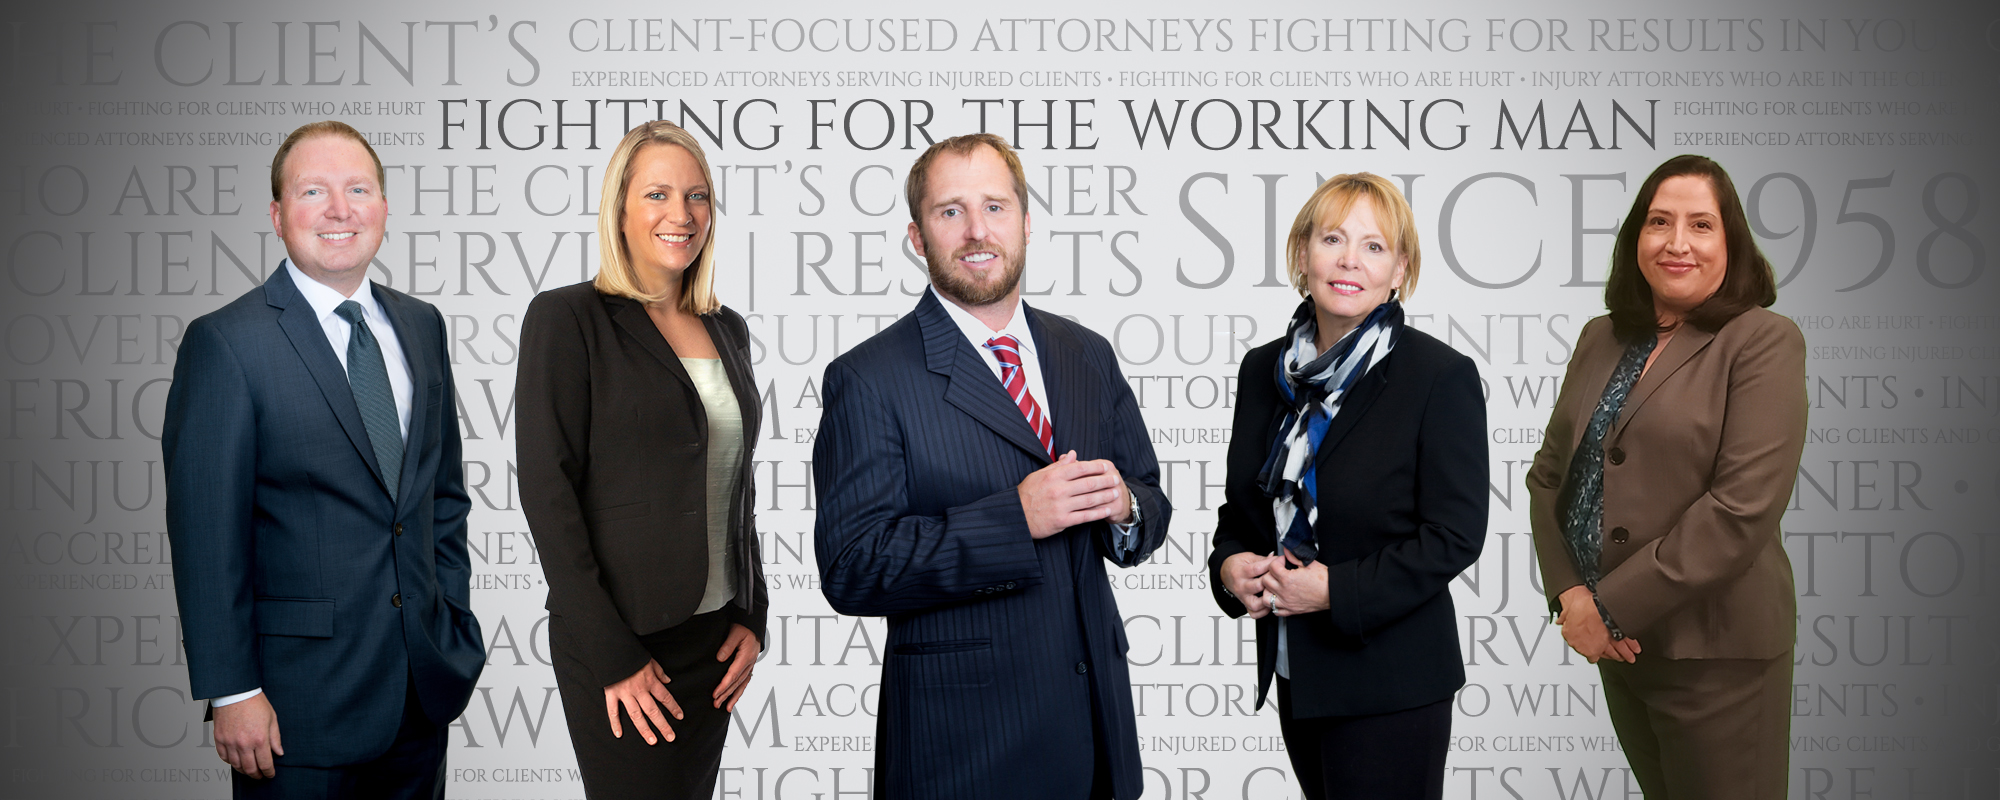 Portrait of the attorney's a The Frickey Law Firm Fighting for working Coloradans